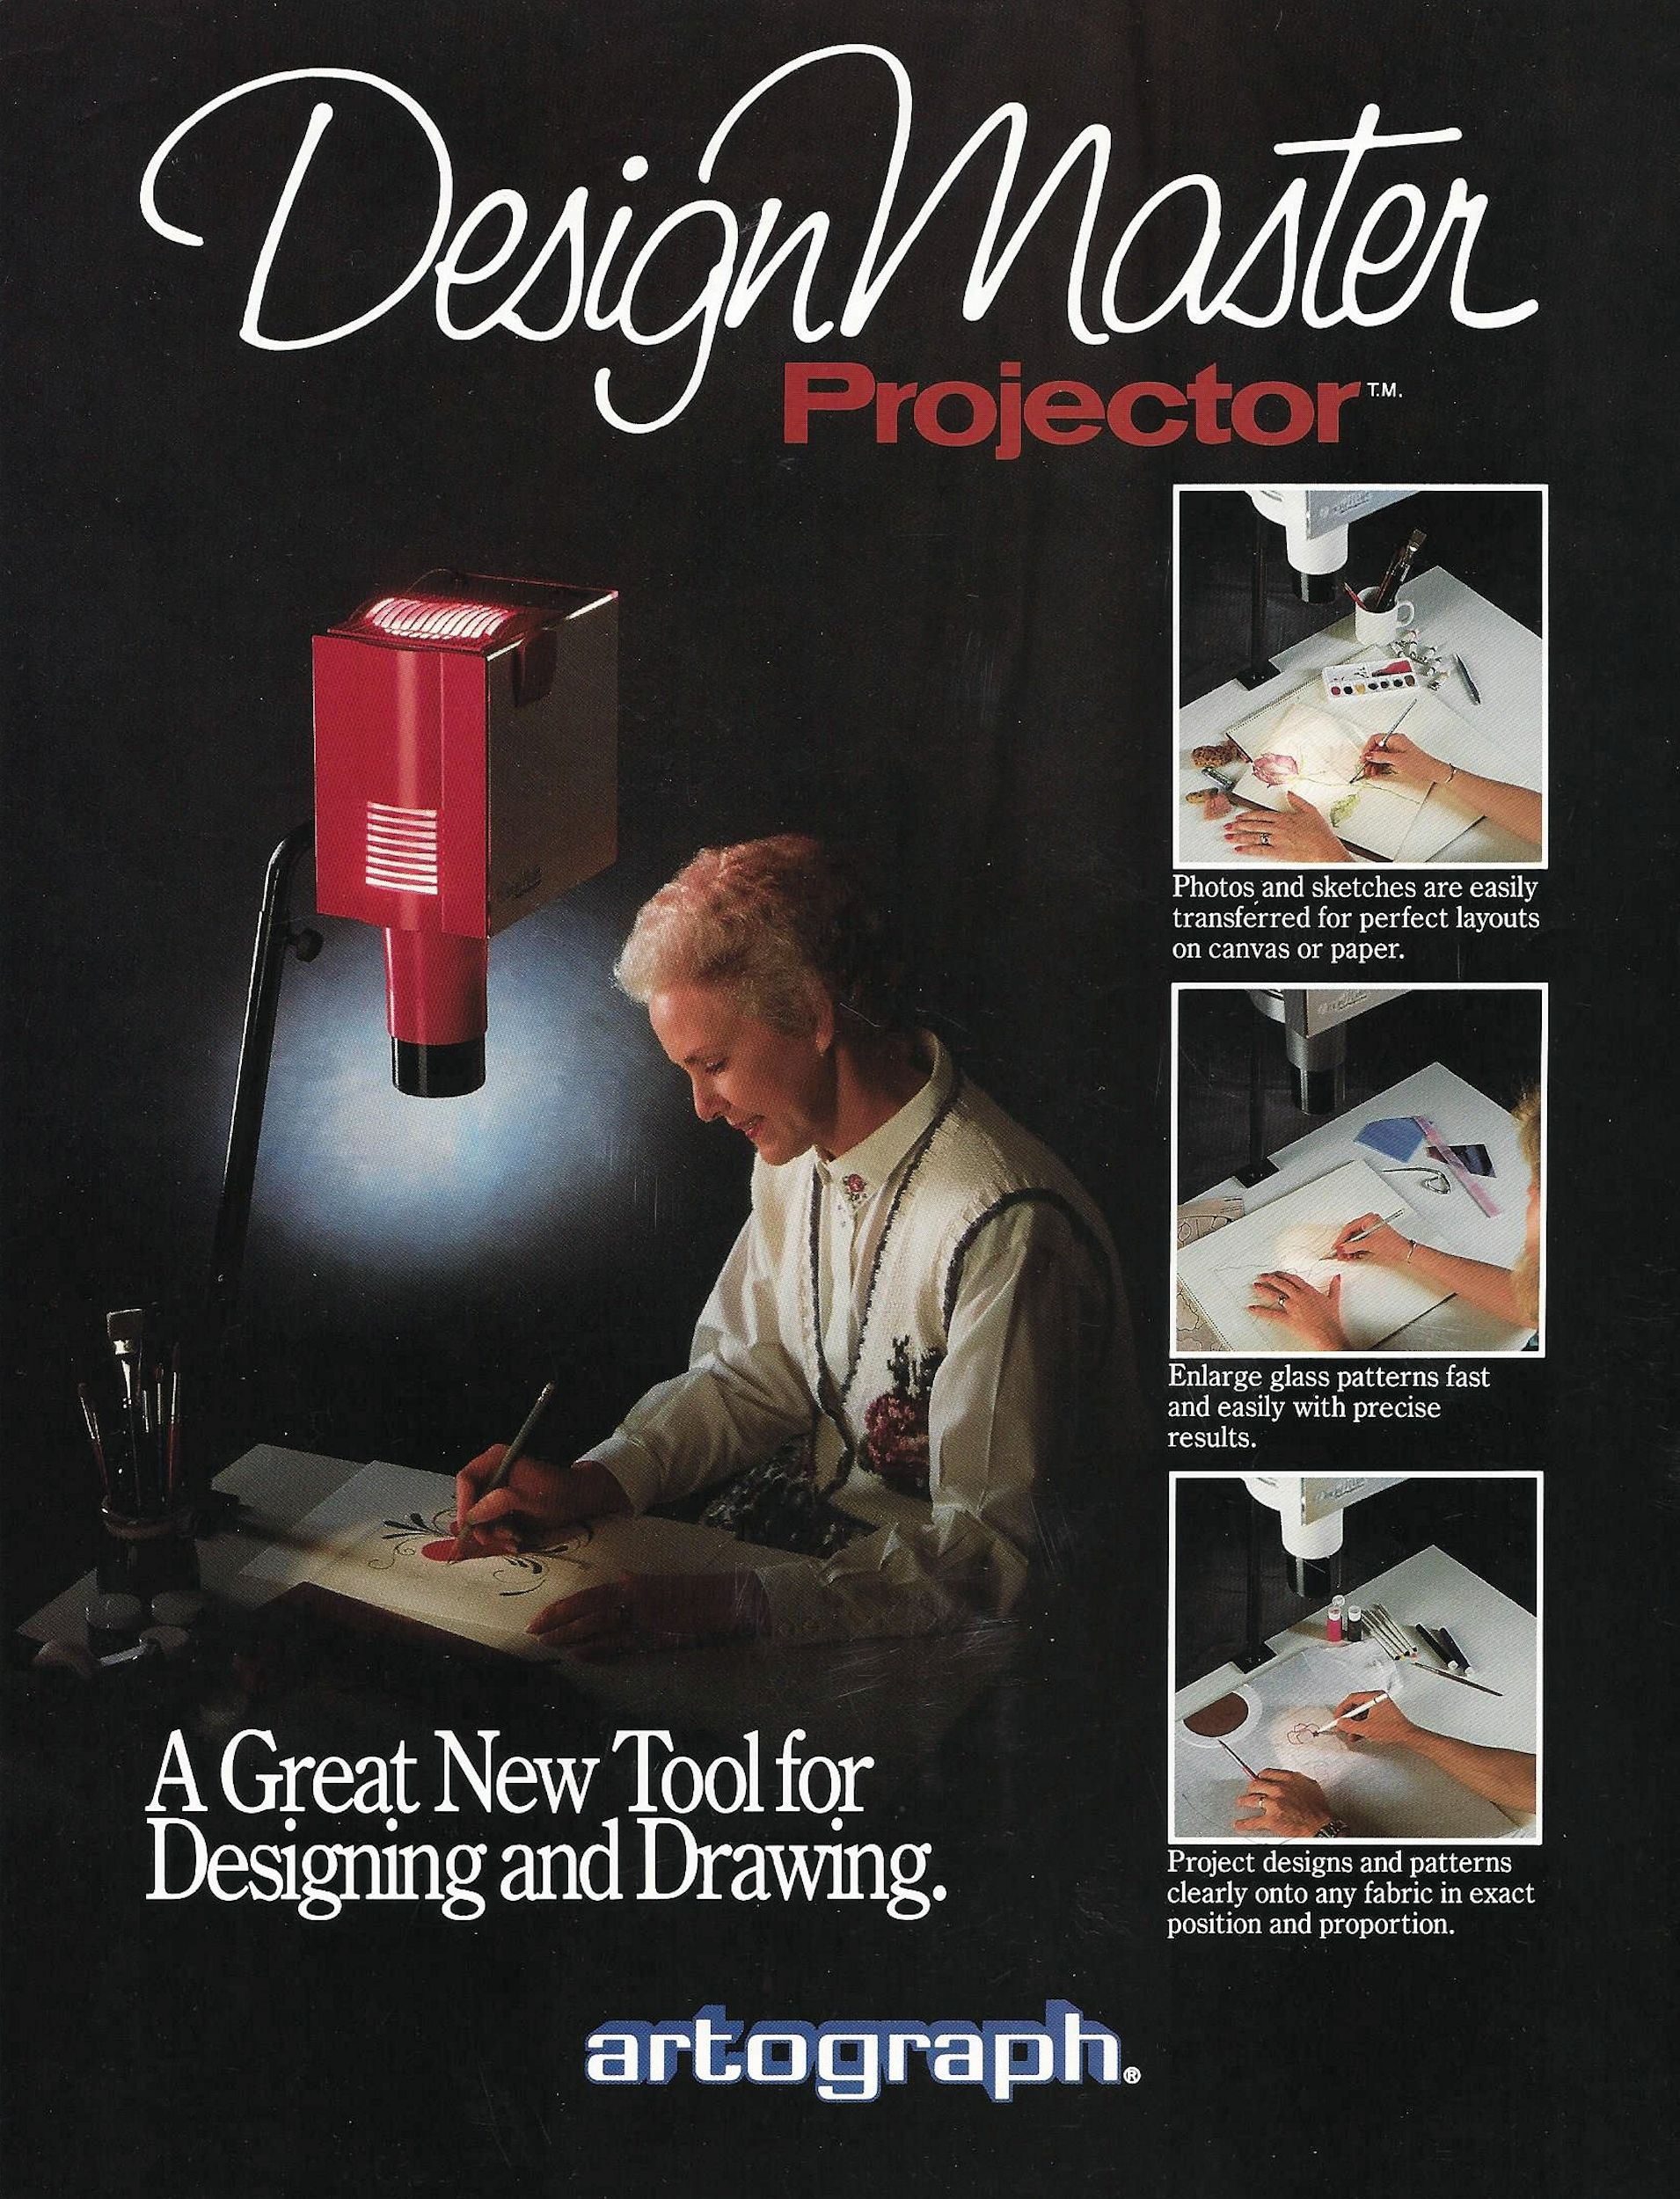 An ad for the DesignMaster from 1990.